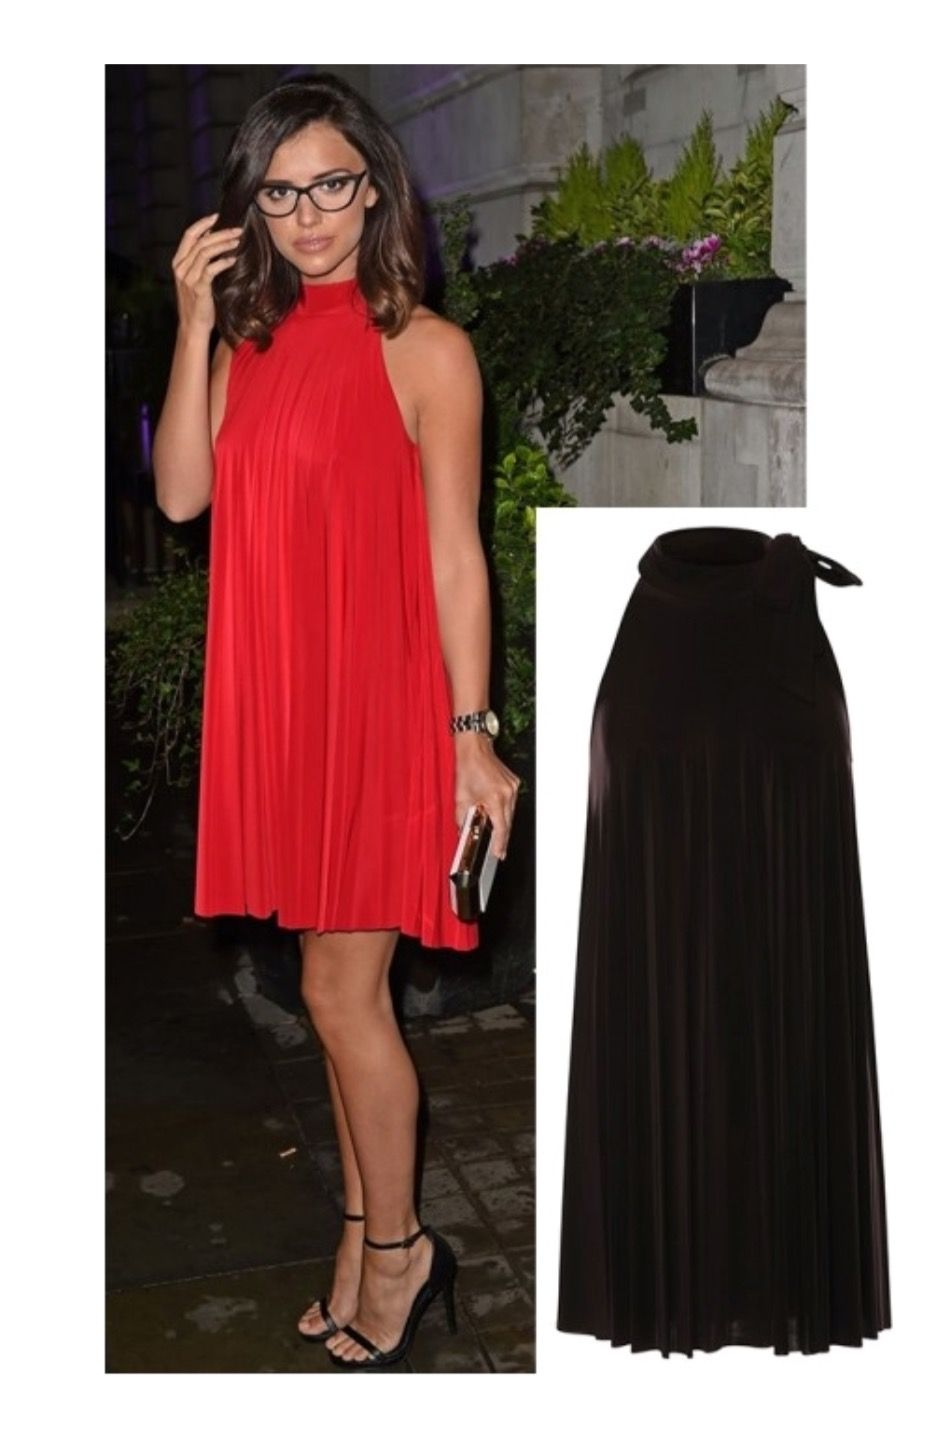 Celebrity style dresses wholesale uk